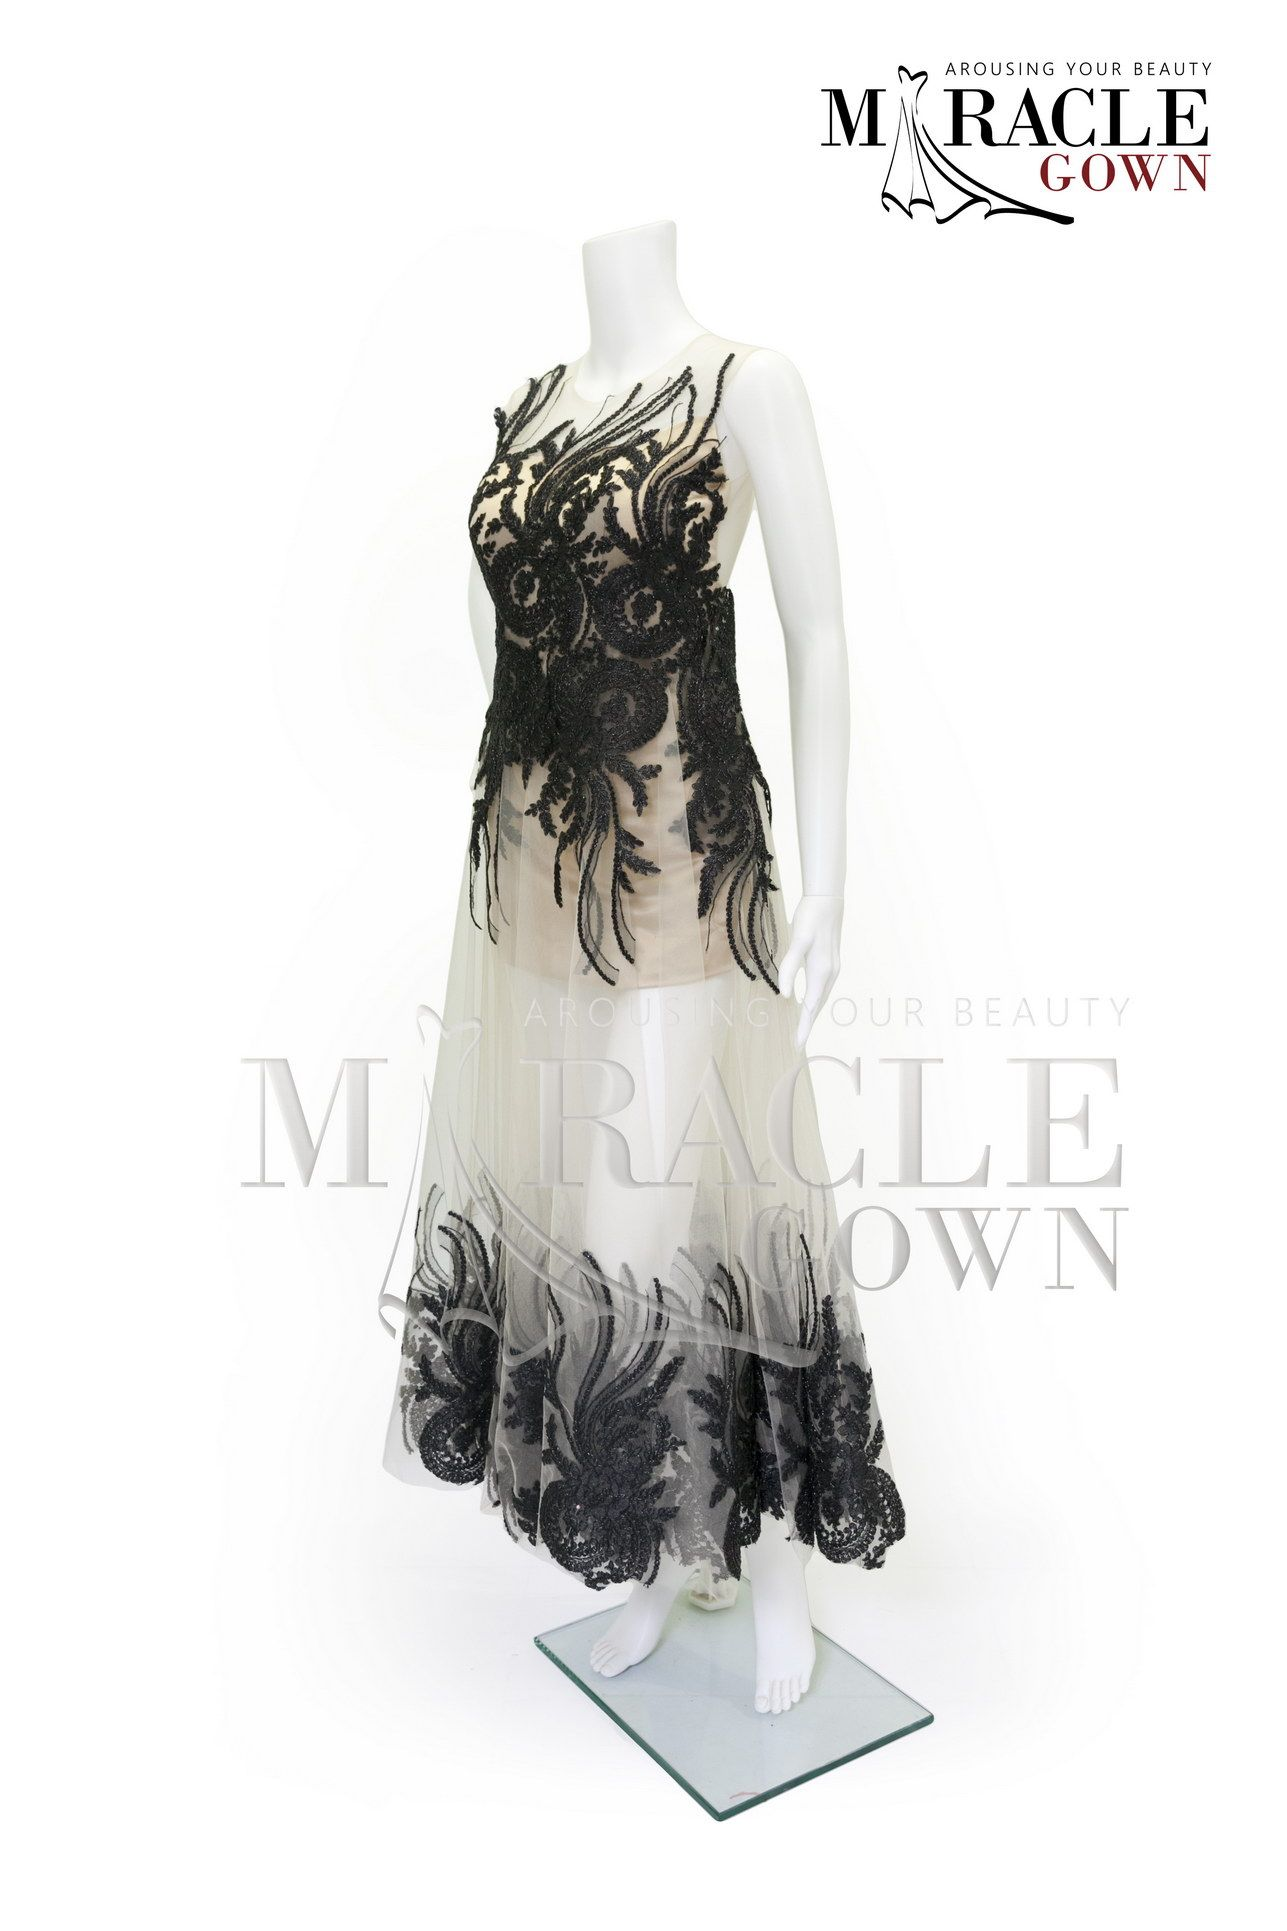 Miracle gown two tone black brocade dress facebookmiracle